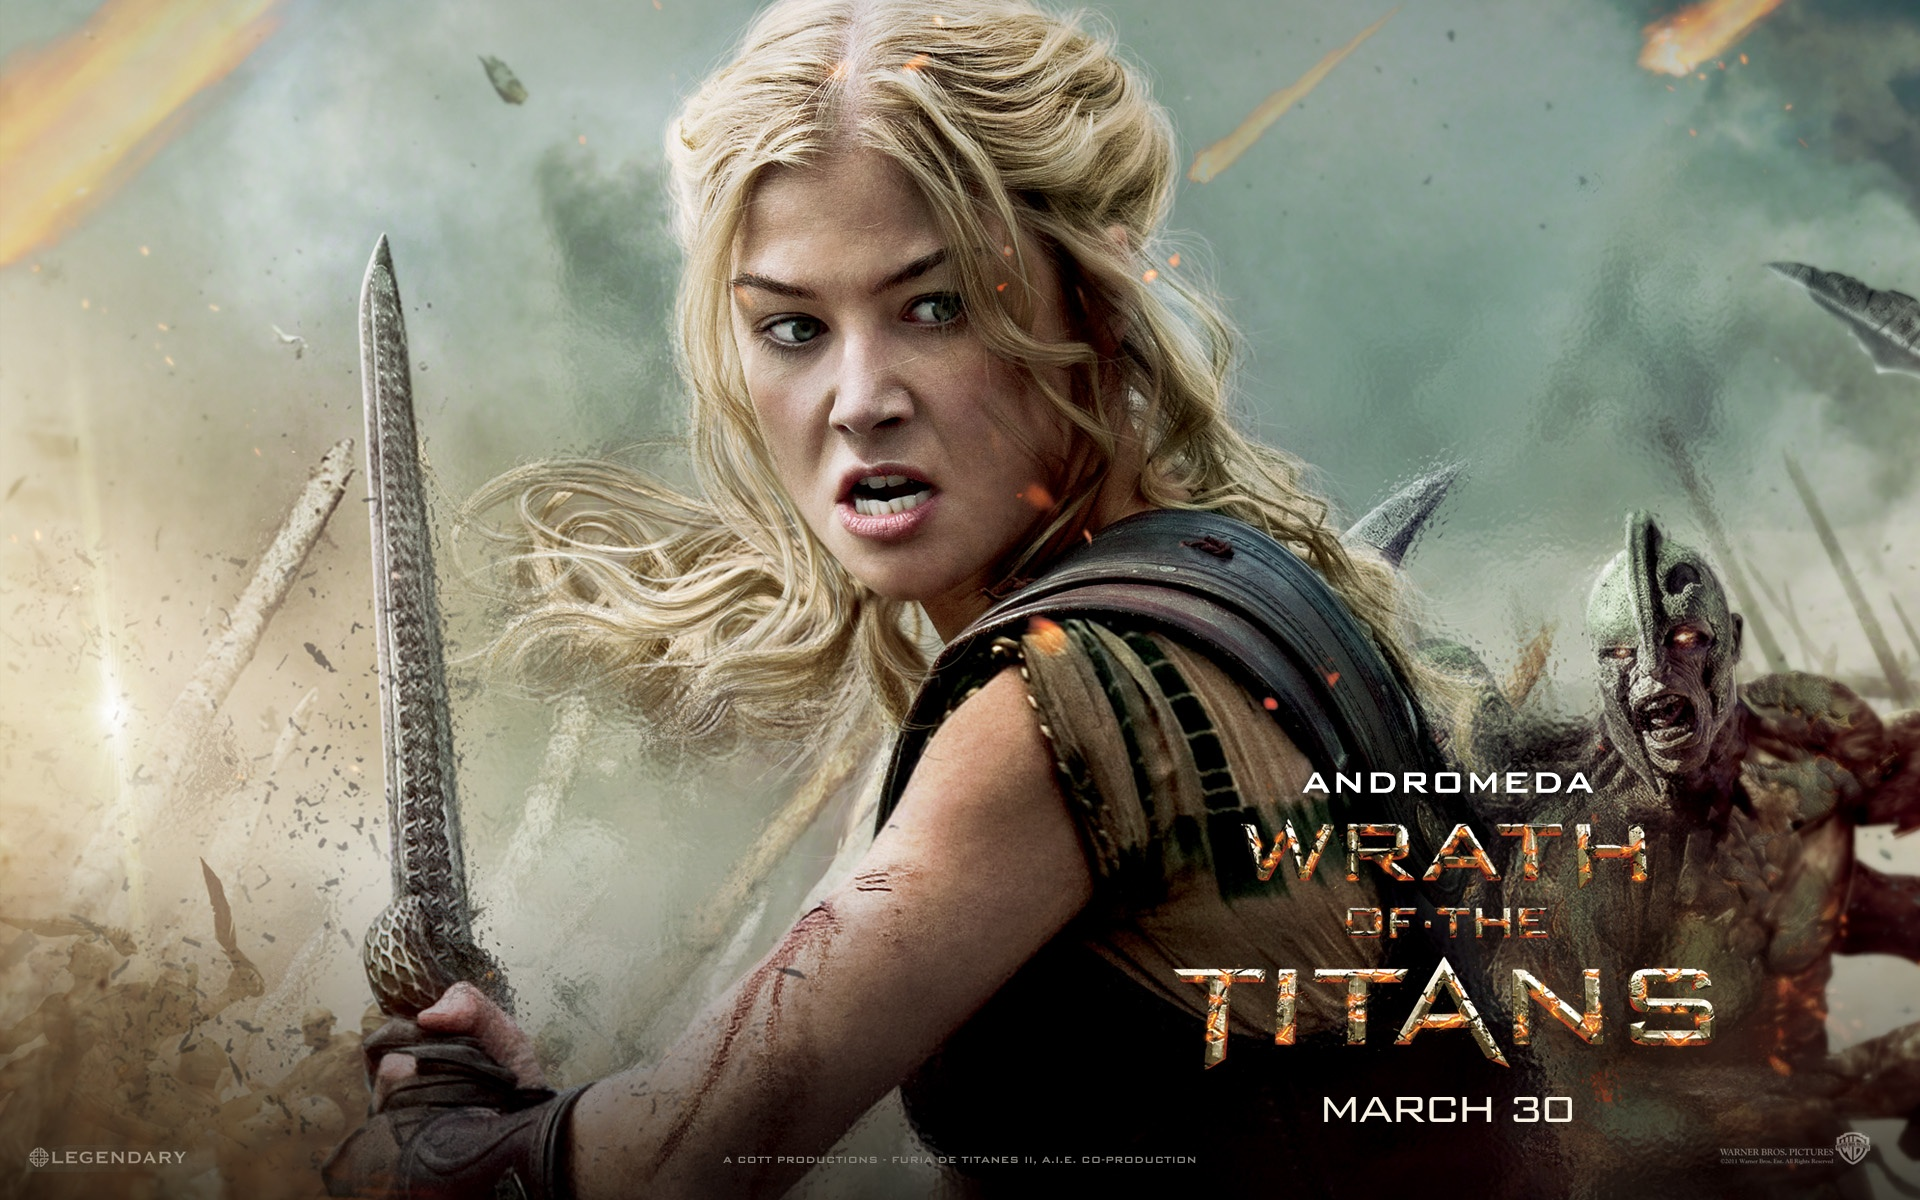 Wallpaper Rosamund Pike In Wrath Of The Titans 1920x1200 Hd